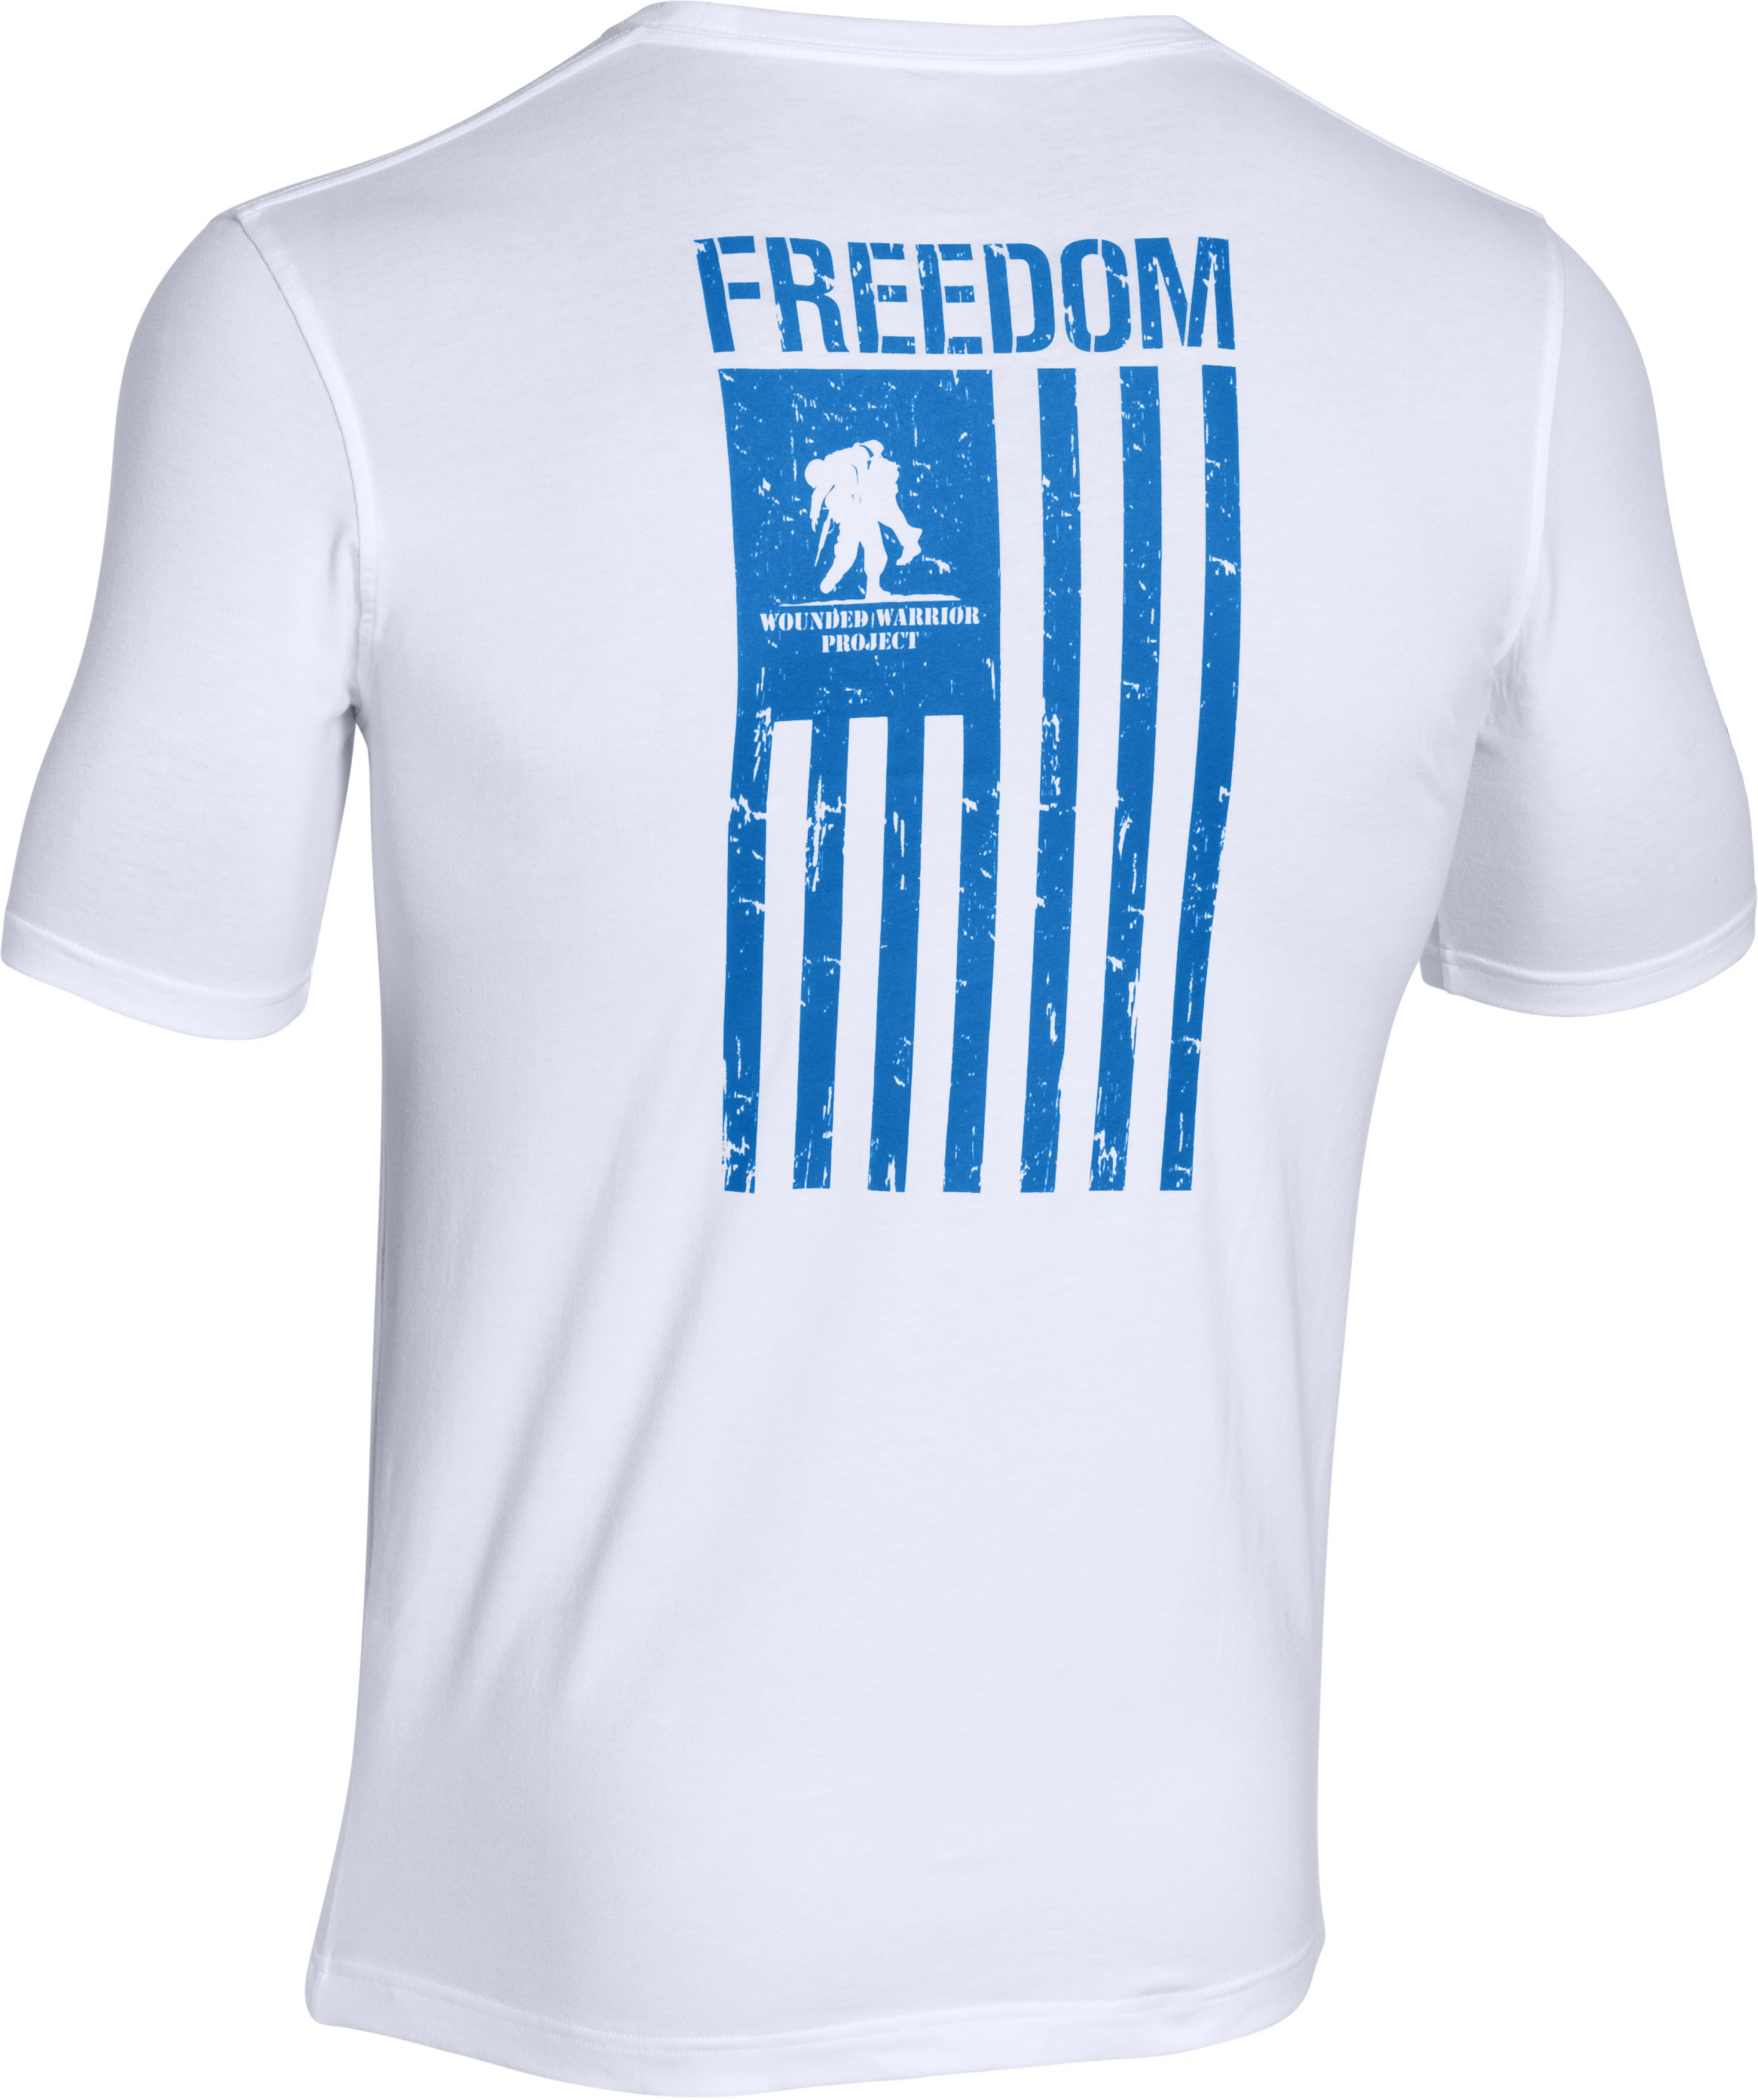 Men's WWP Freedom Flag T-Shirt, White, undefined